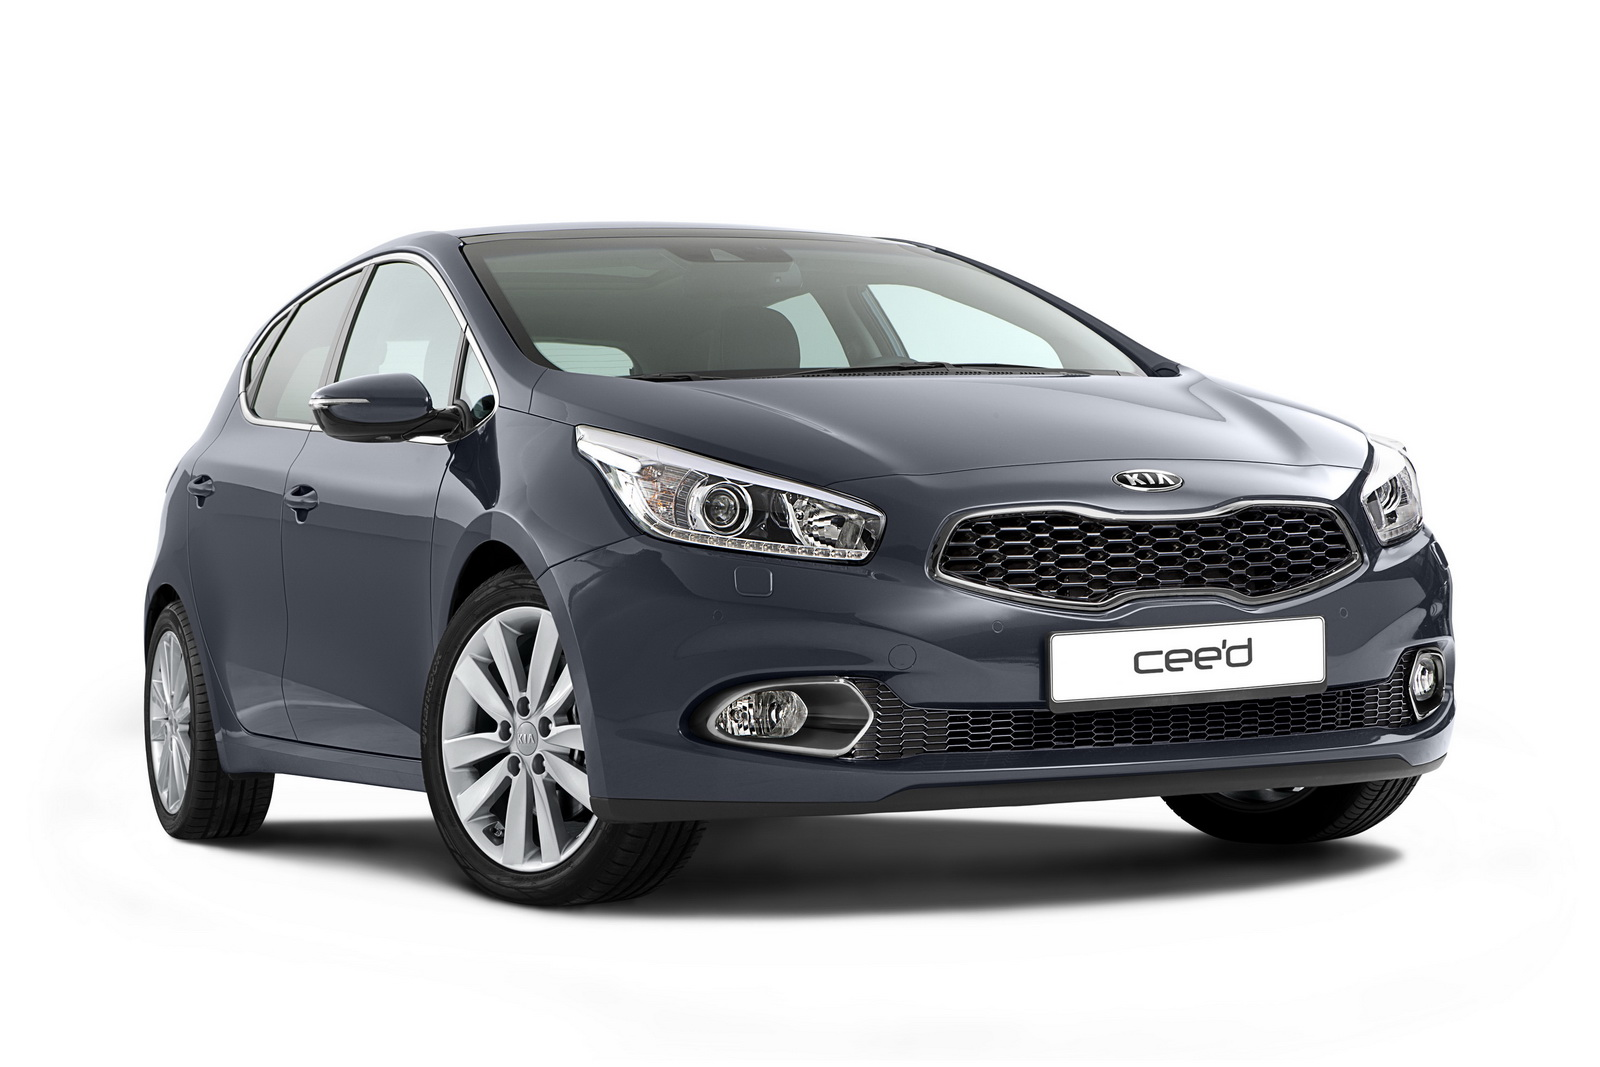 Kia unveils sporty and sophisticated new ceed   Auto Car   Best